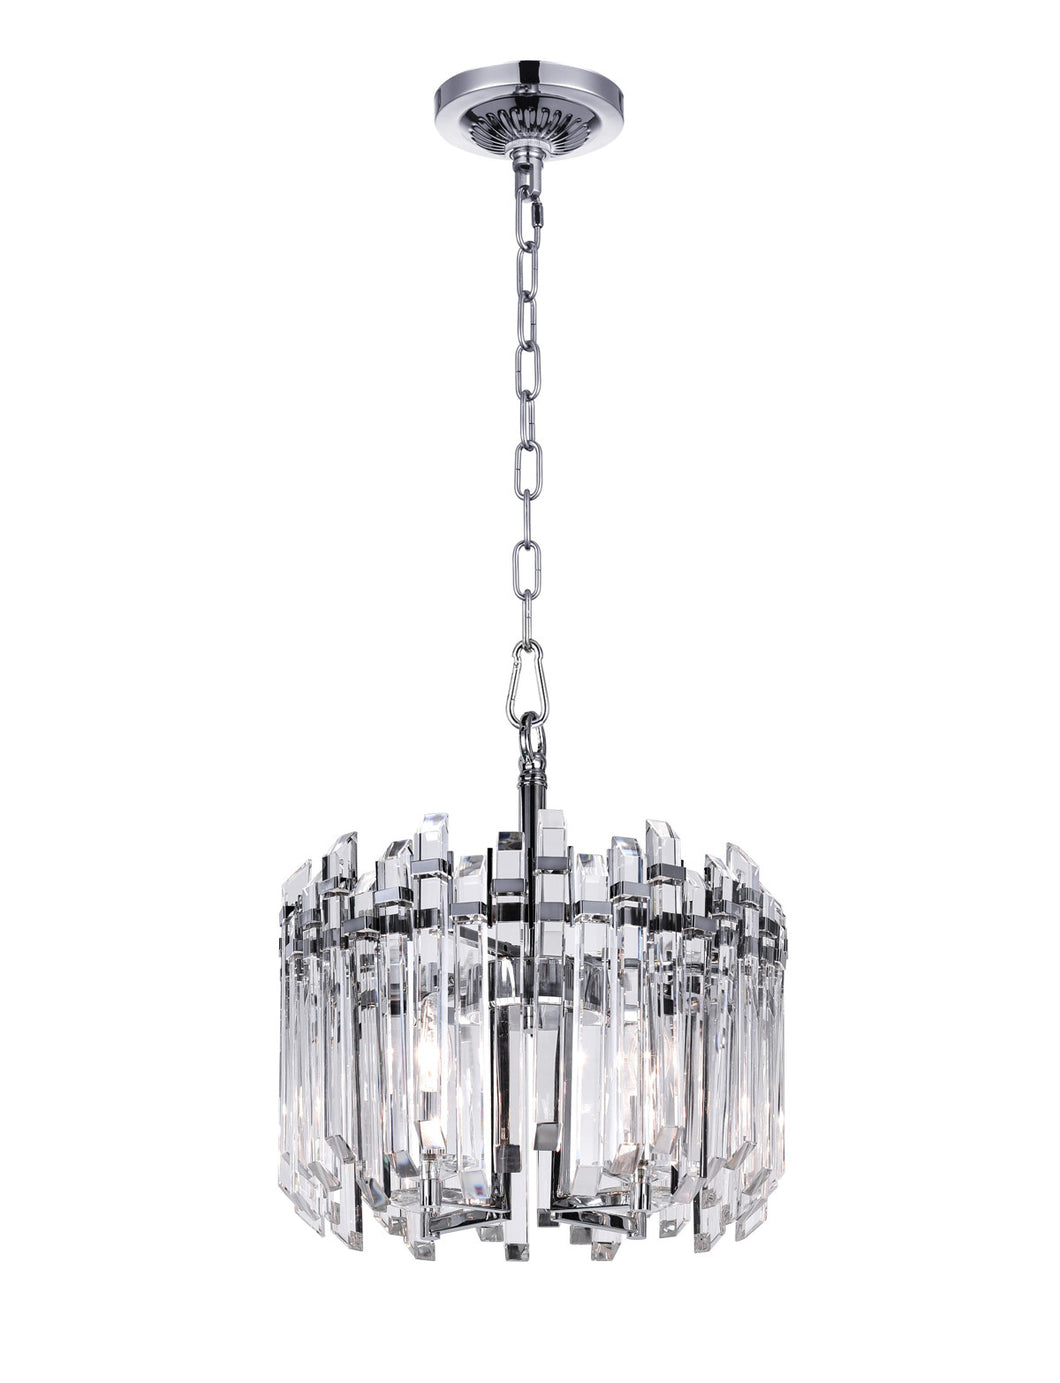 4 Light Chandelier with Chrome Finish